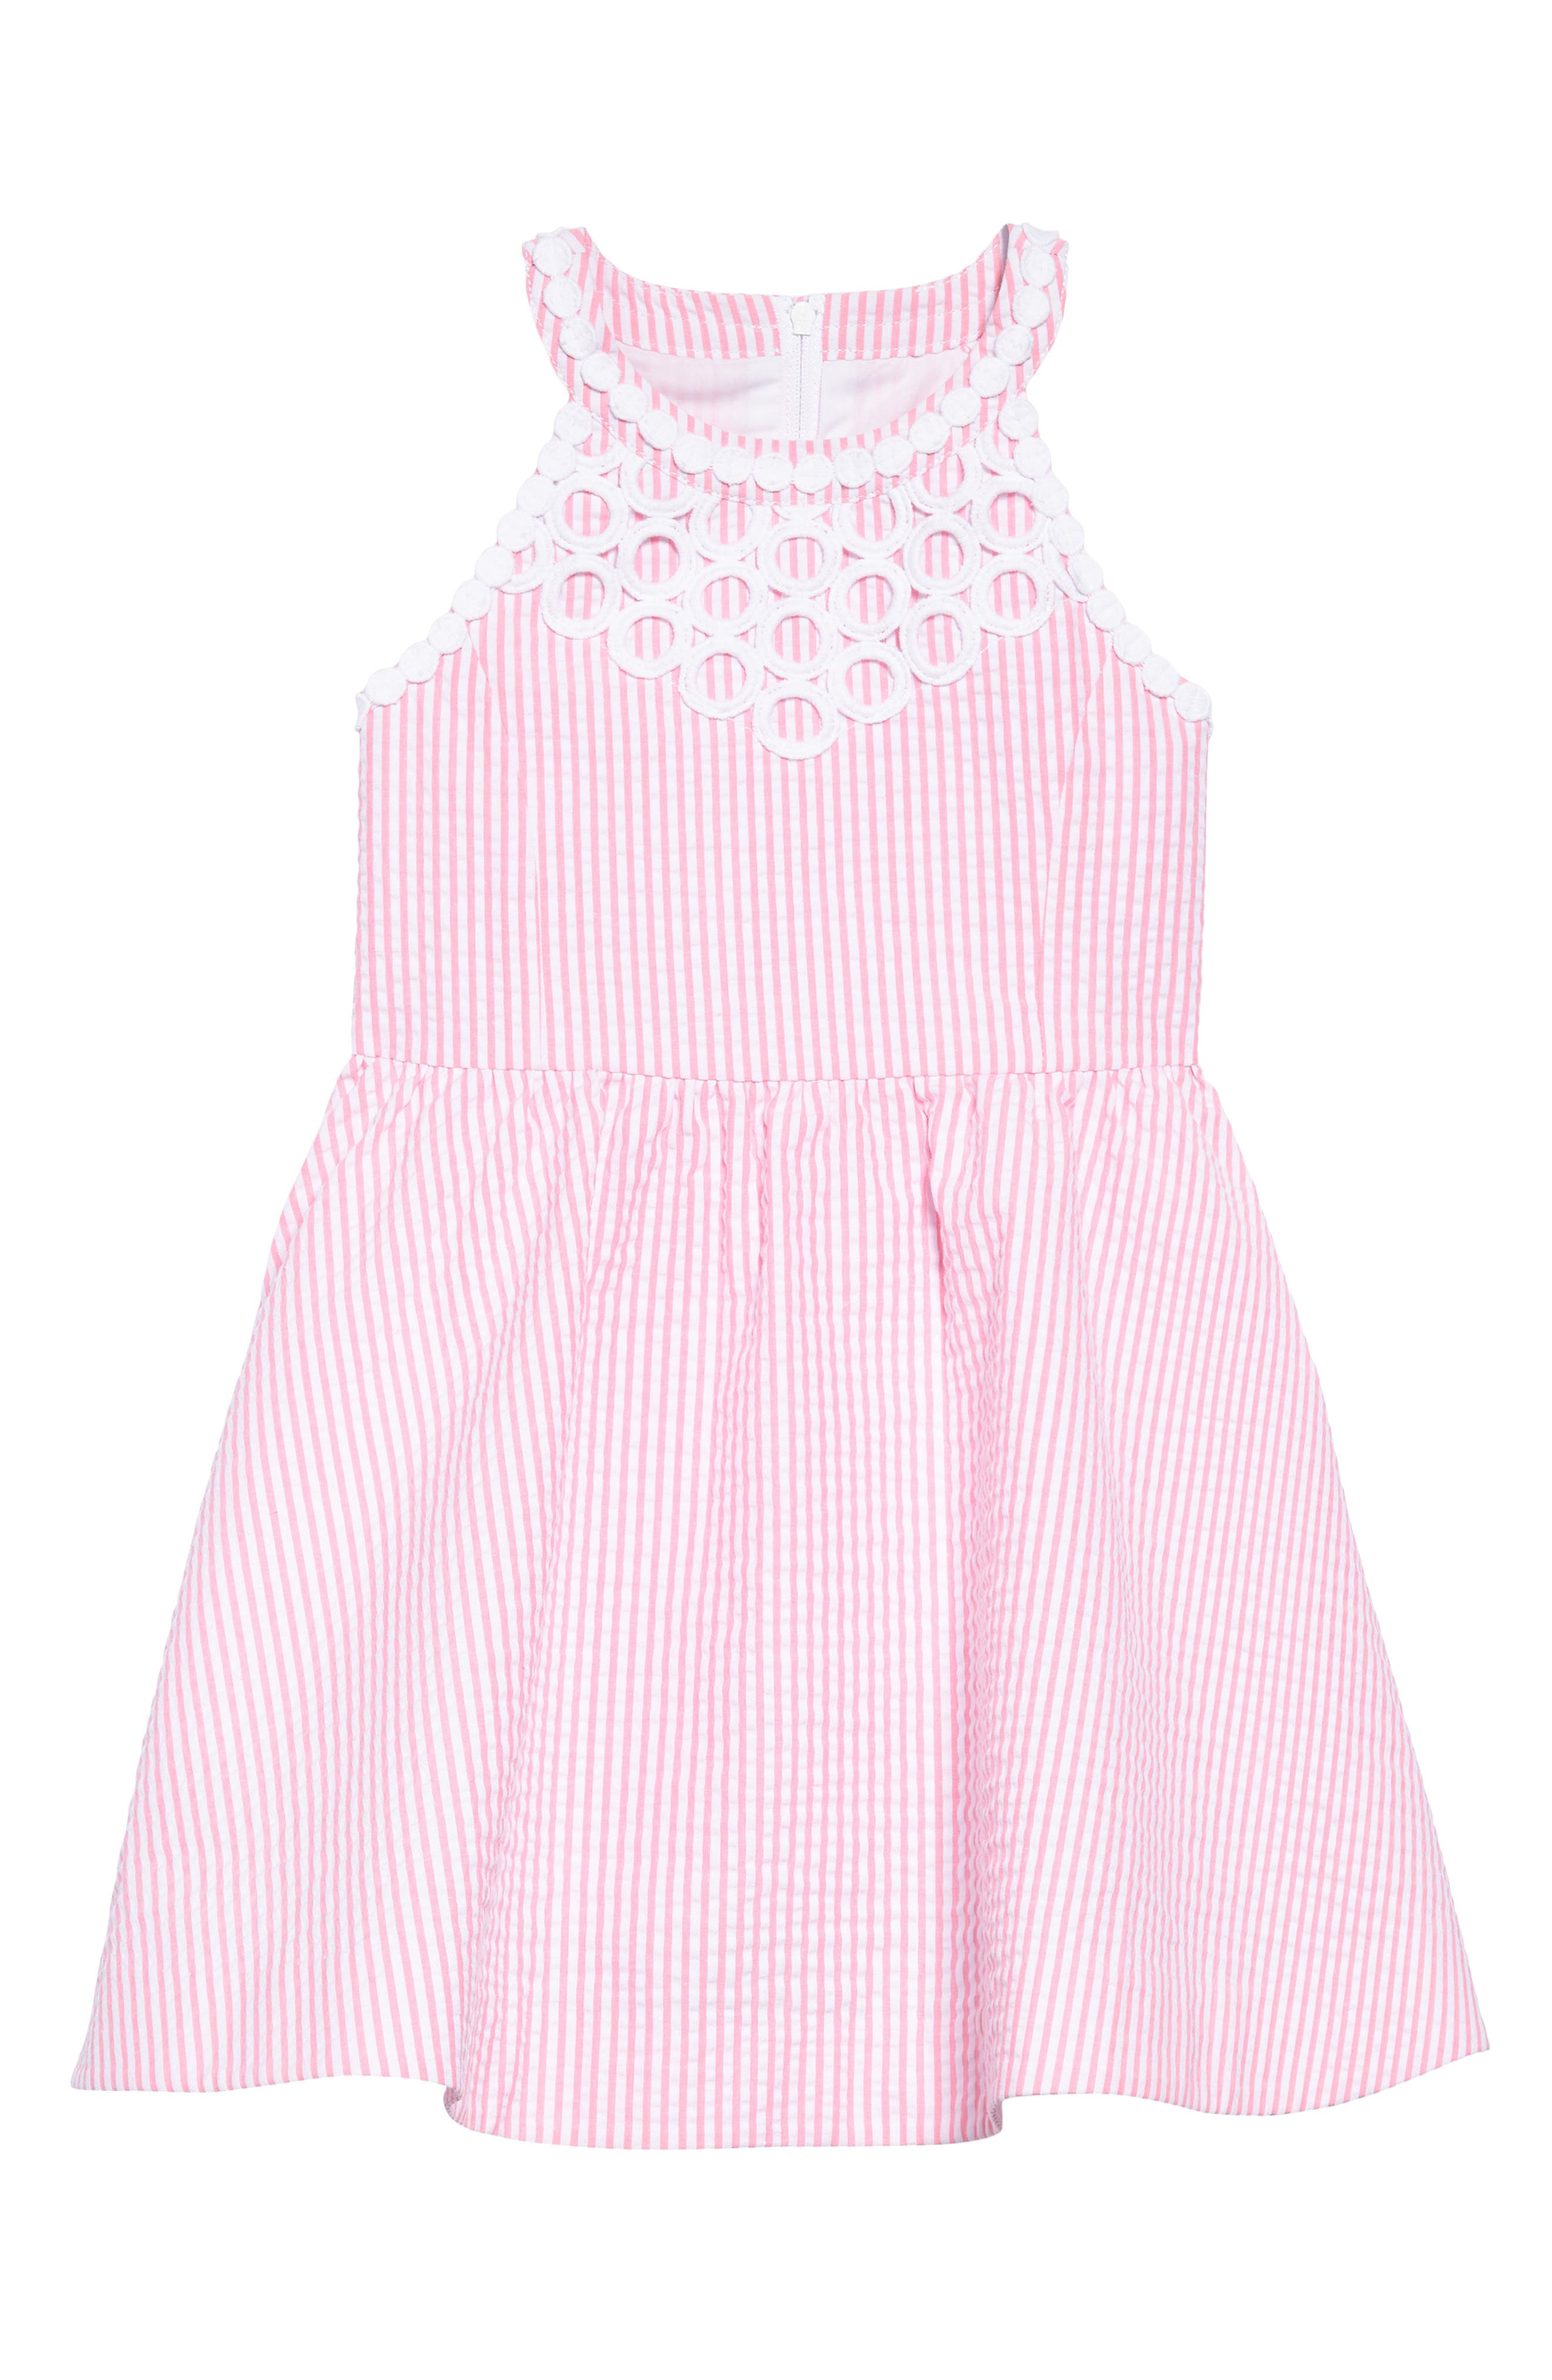 Kinley Fit & Flare Dress,                         Main,                         color, Pink Cosmo Yarn Dyed Stripe